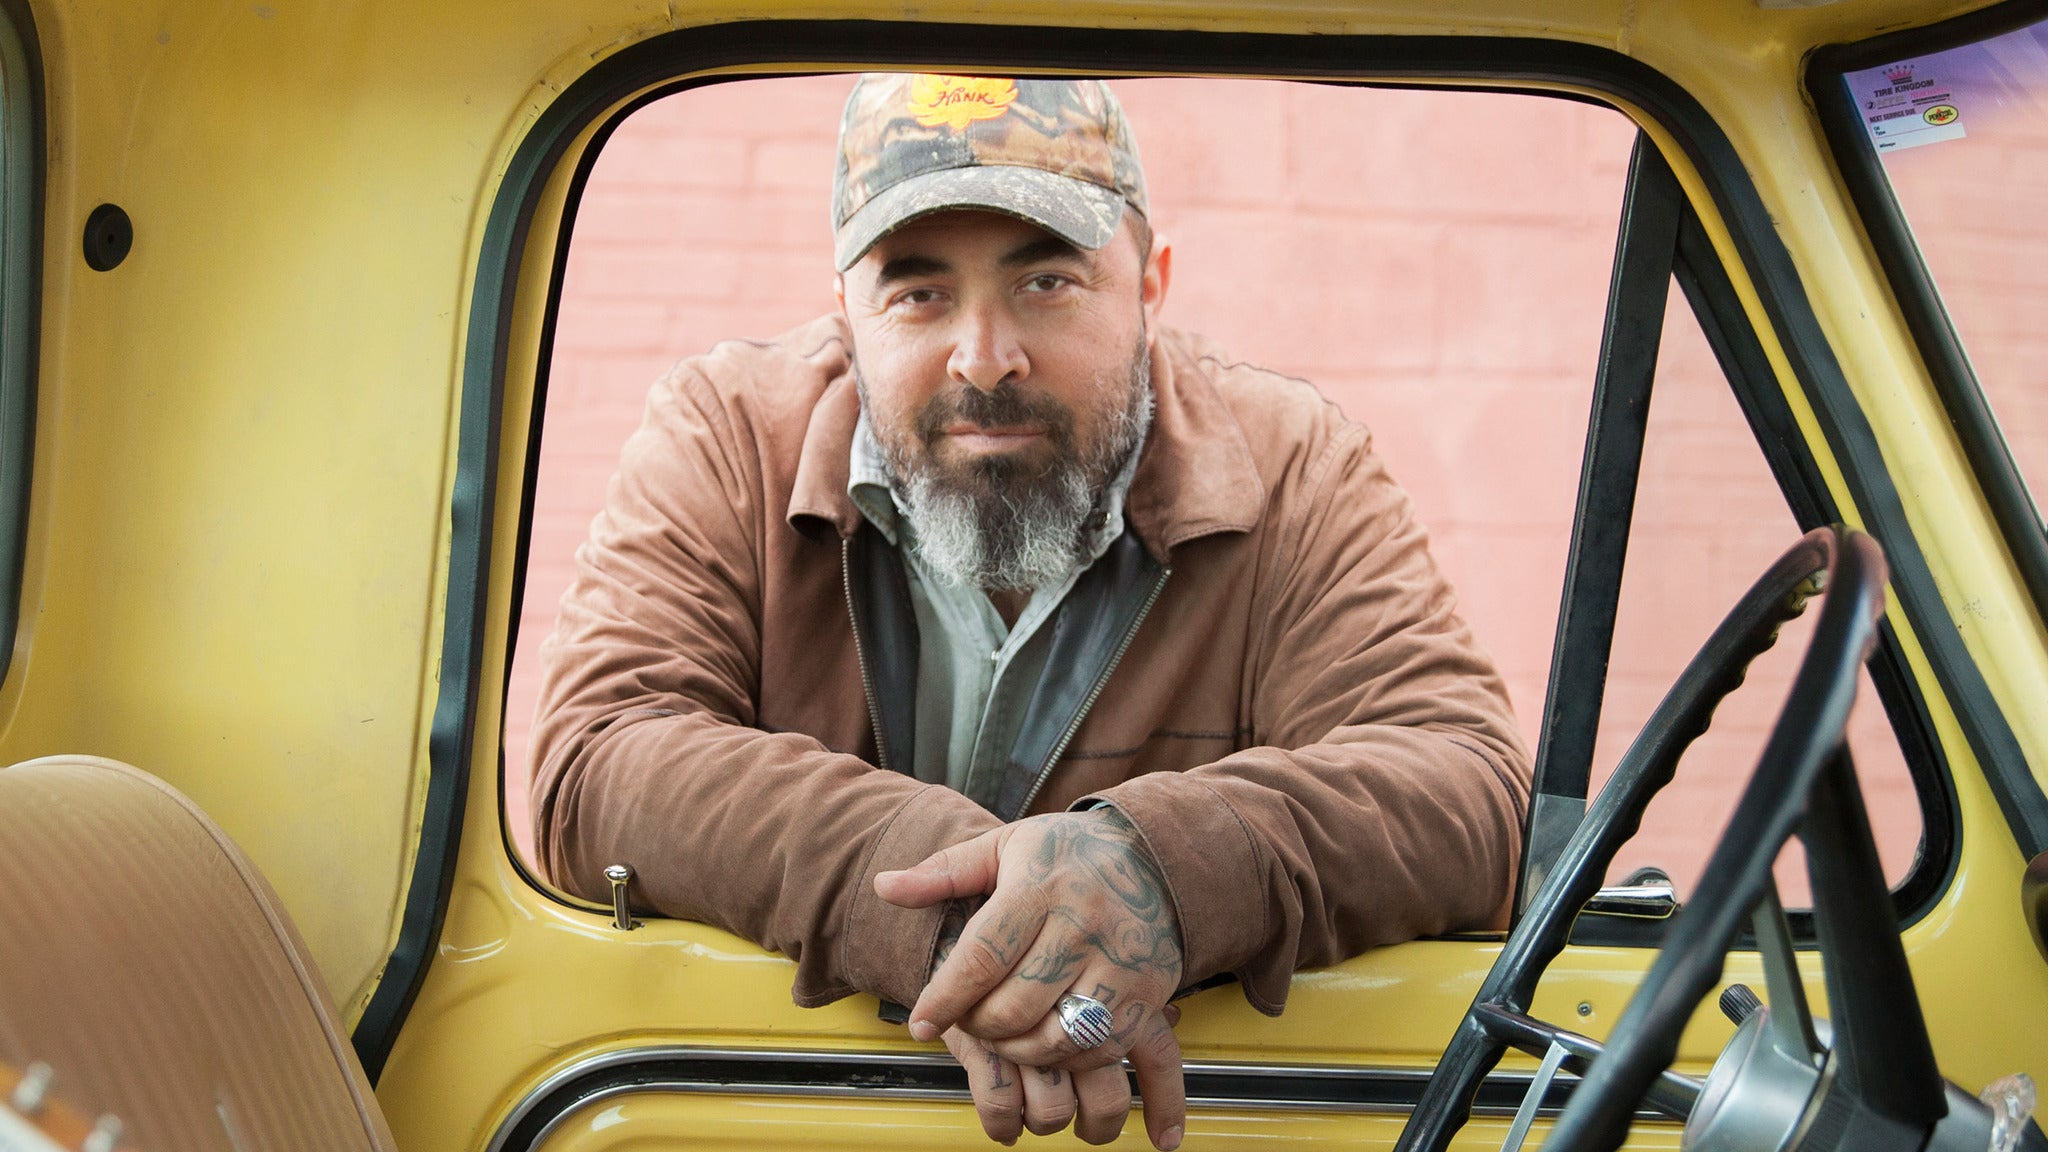 Aaron Lewis at Iron City-Birmingham